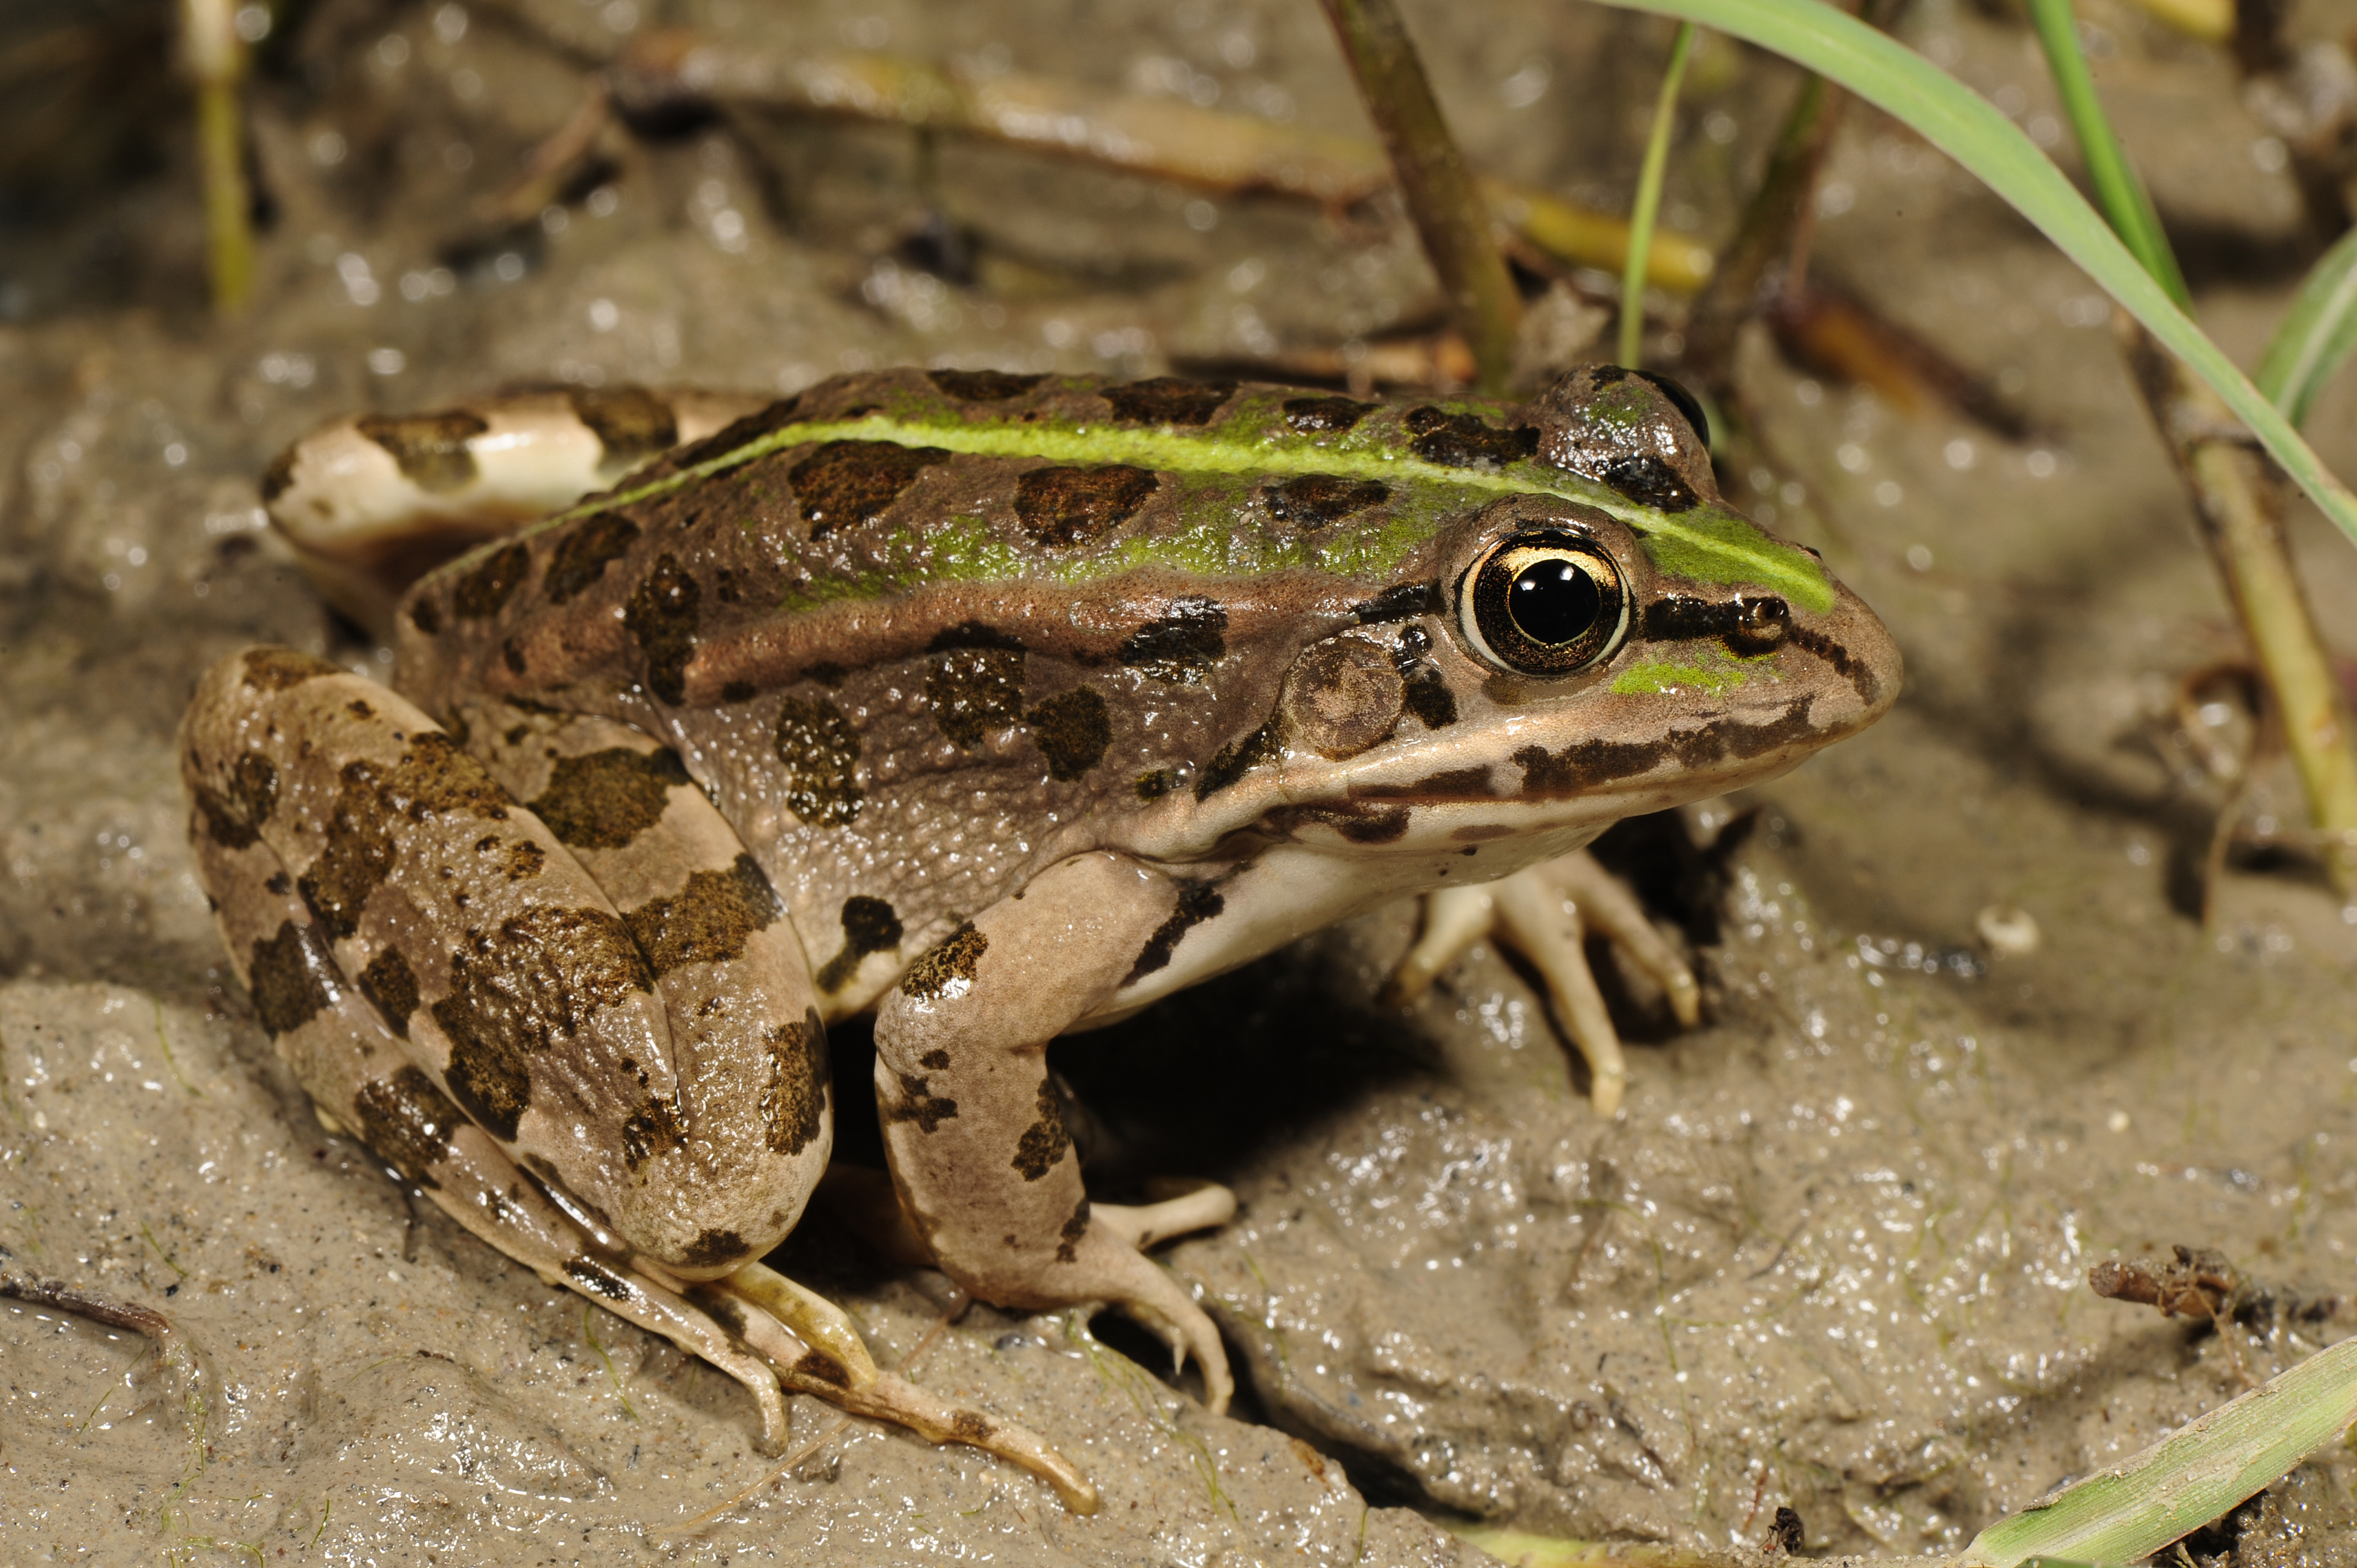 Depiction of Pelophylax epeiroticus